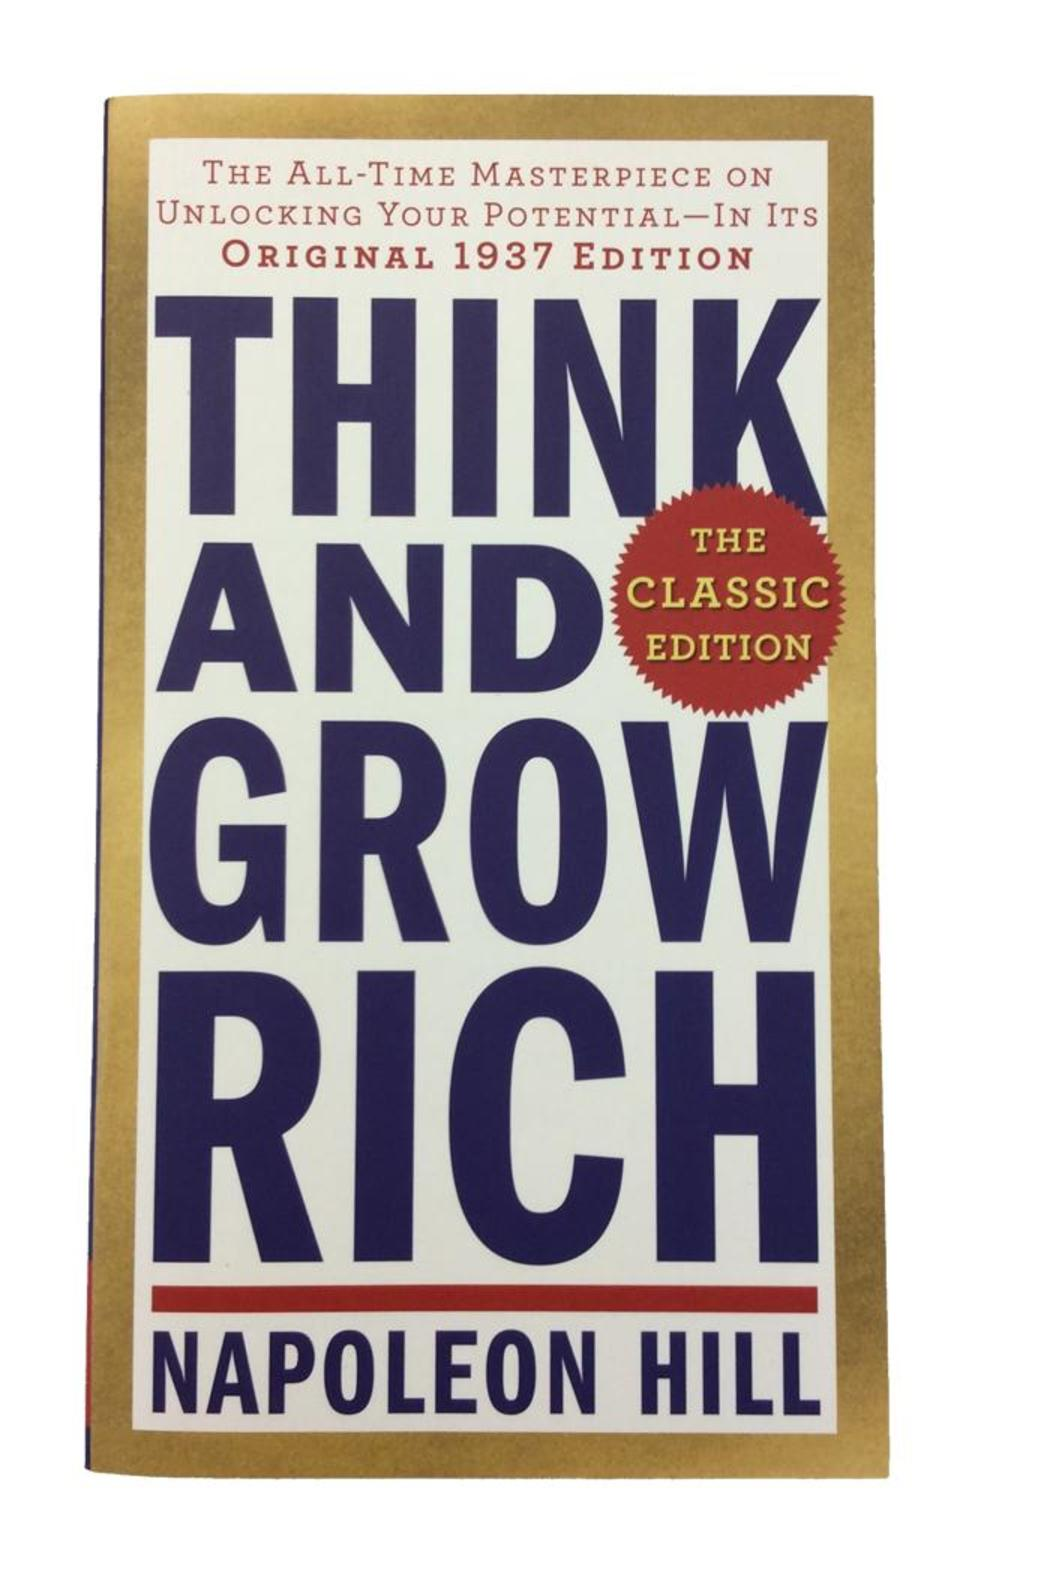 Penguin Think And Grow Book - Main Image